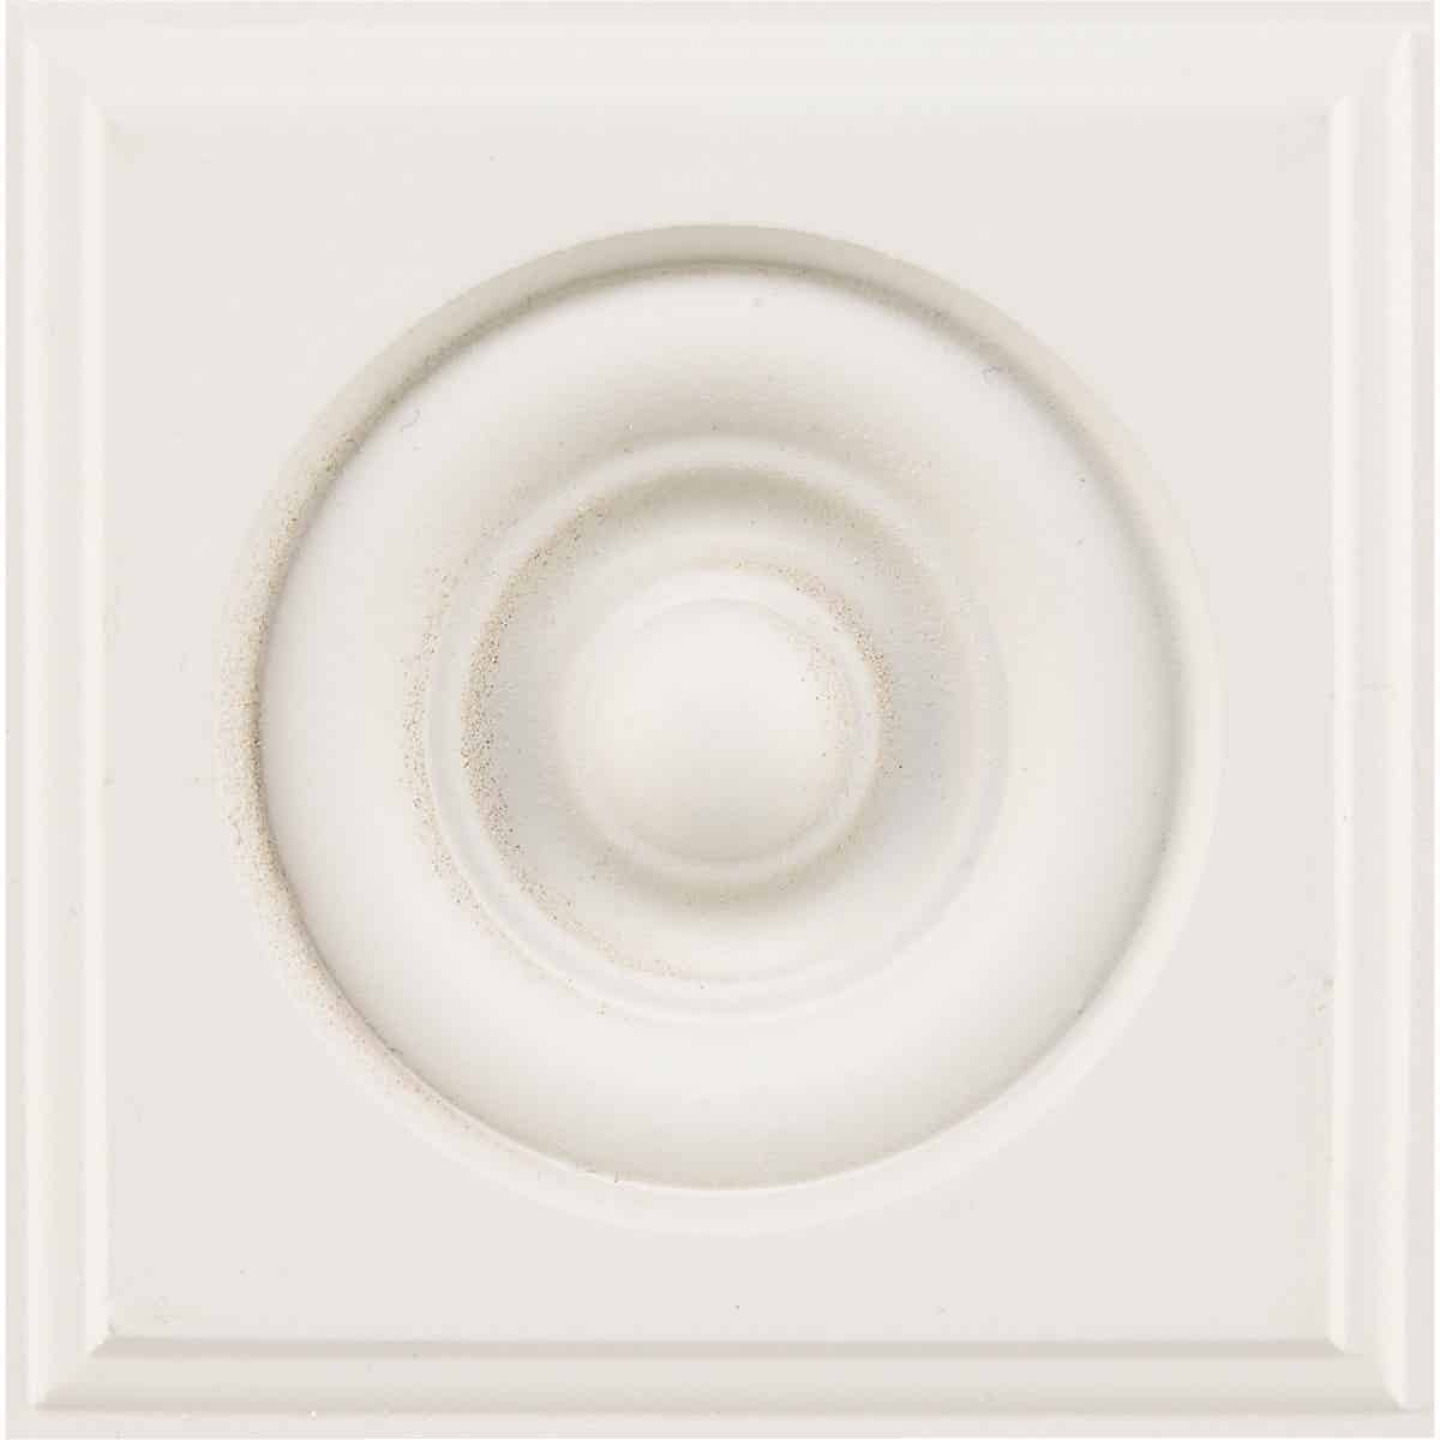 House of Fara 7/8 In. x 3-1/2 In. Primed MDF Rosette Image 4